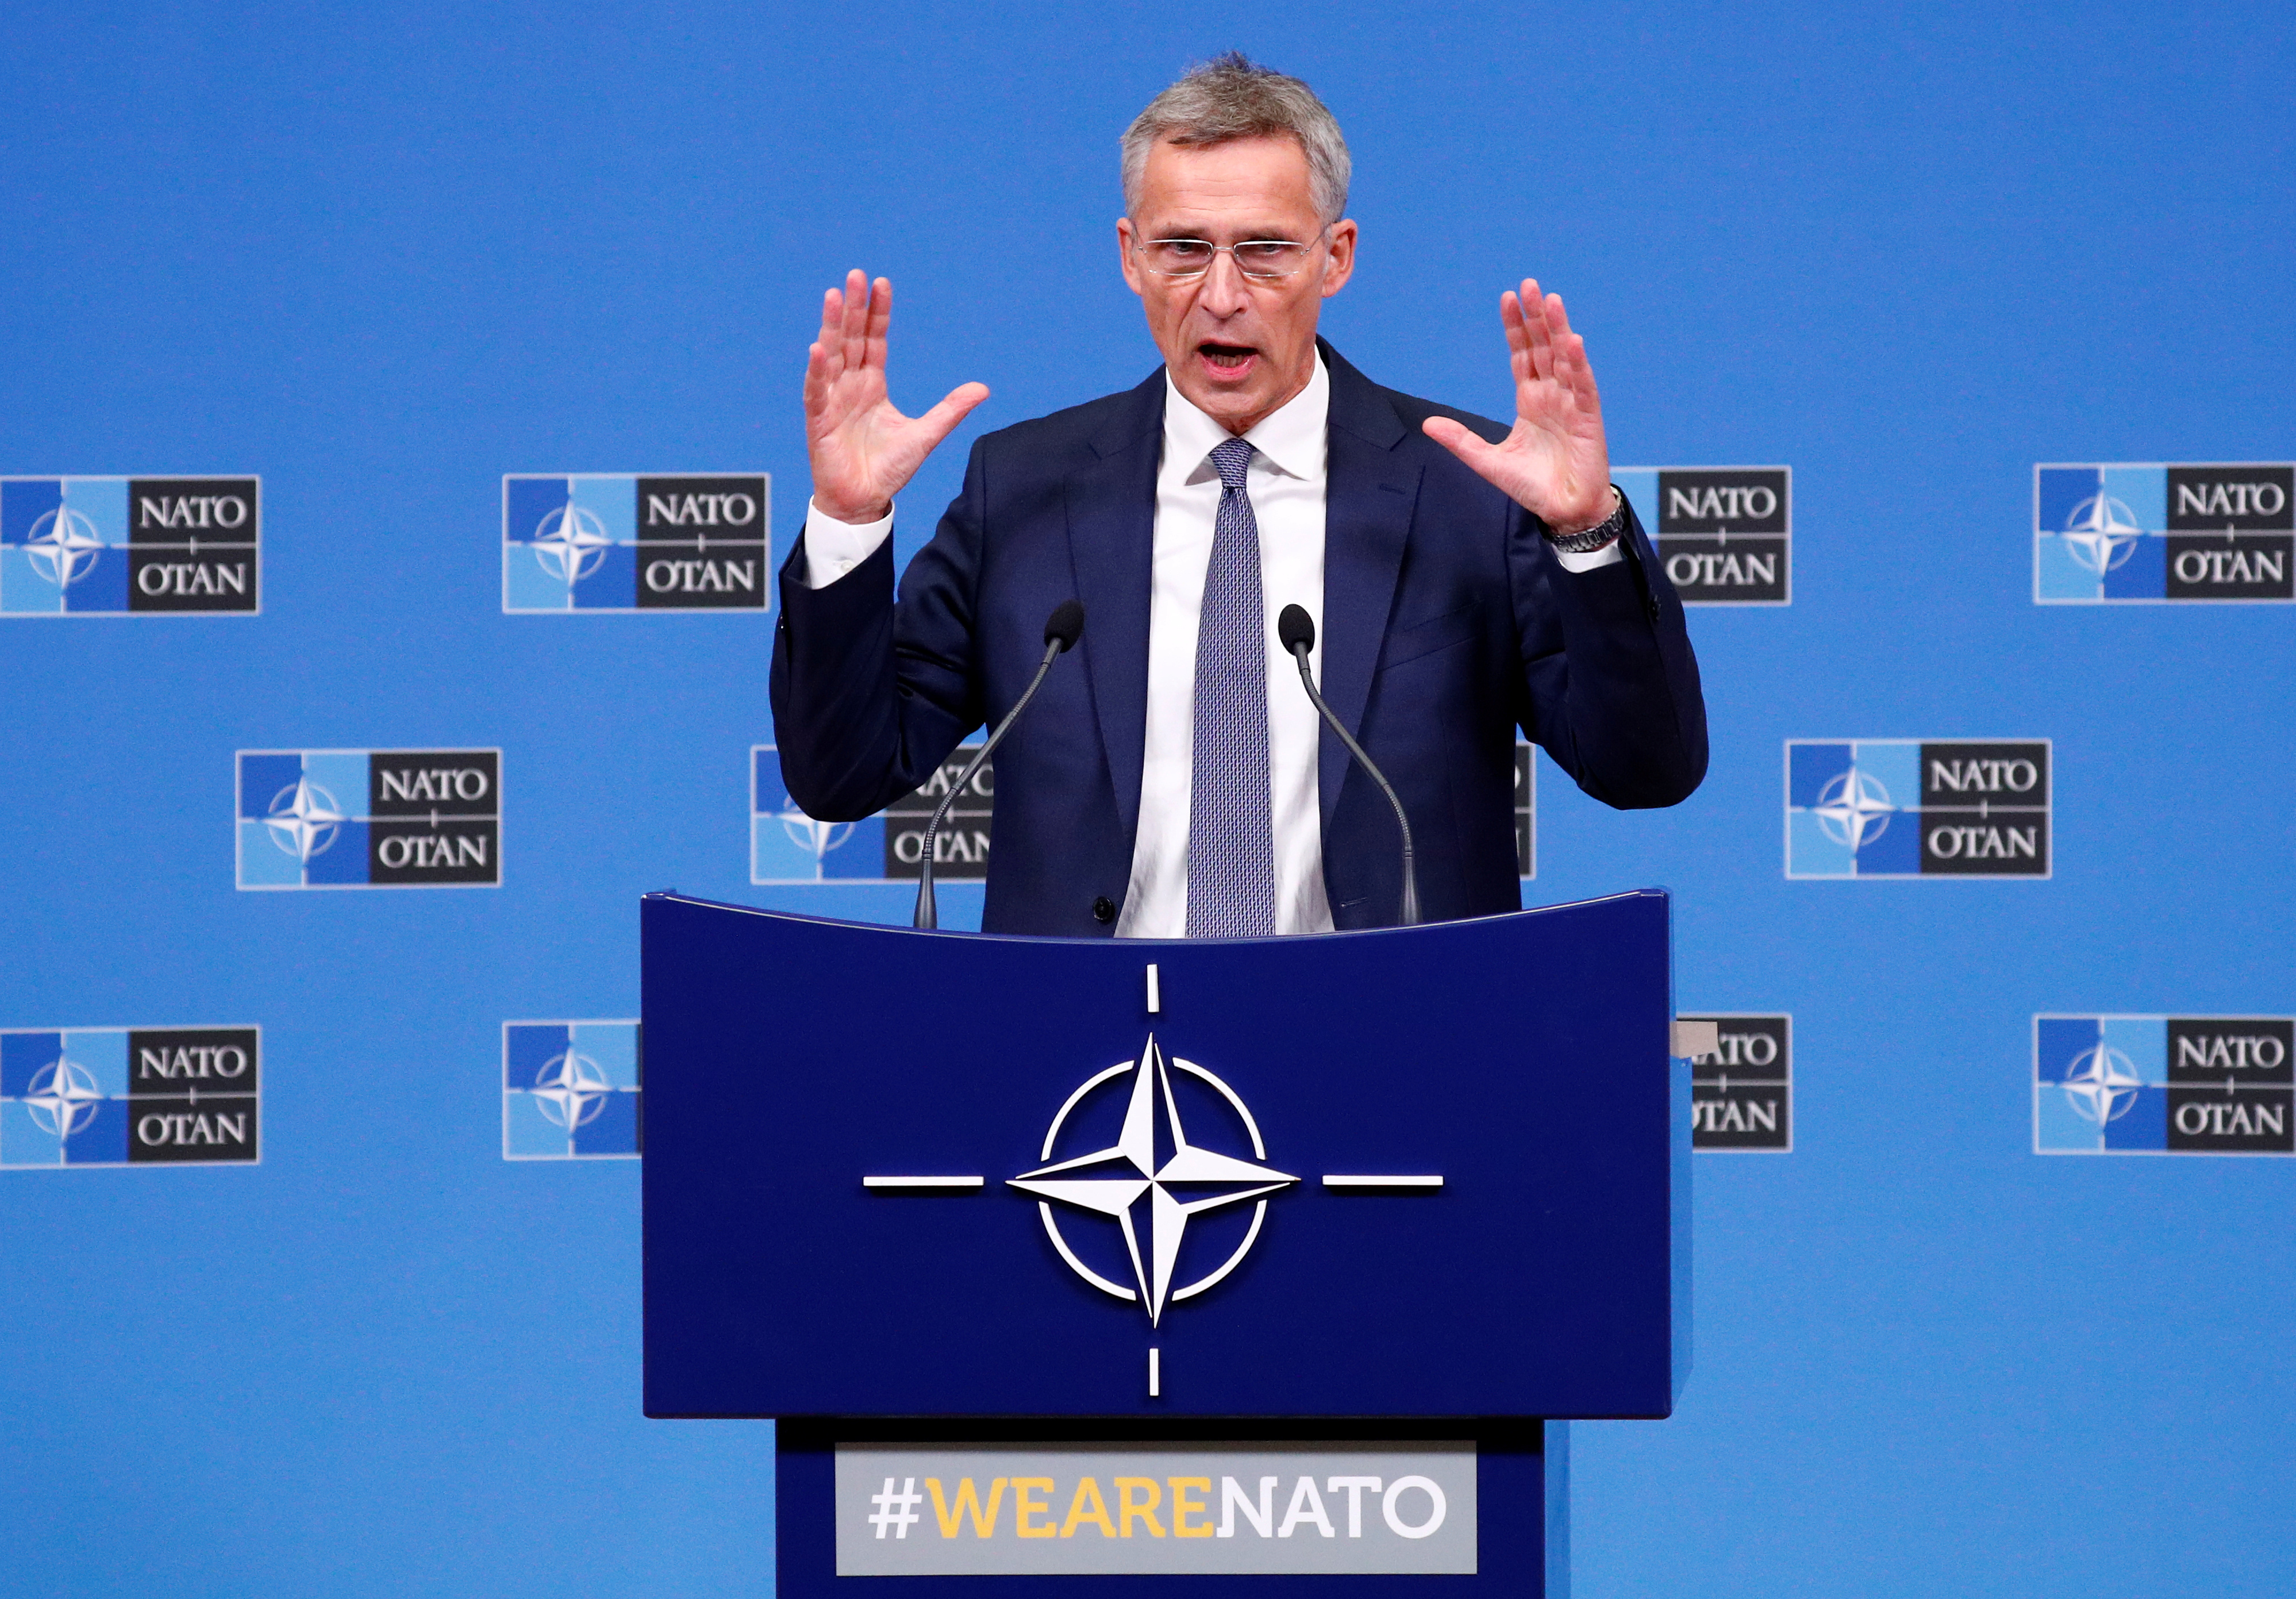 FILE PHOTO: NATO Secretary-General Jens Stoltenberg speaks at a news conference after a NATO defence ministers meeting at the Alliance headquarters in Brussels, Belgium, October 4, 2018. REUTERS/Francois Lenoir/File photo